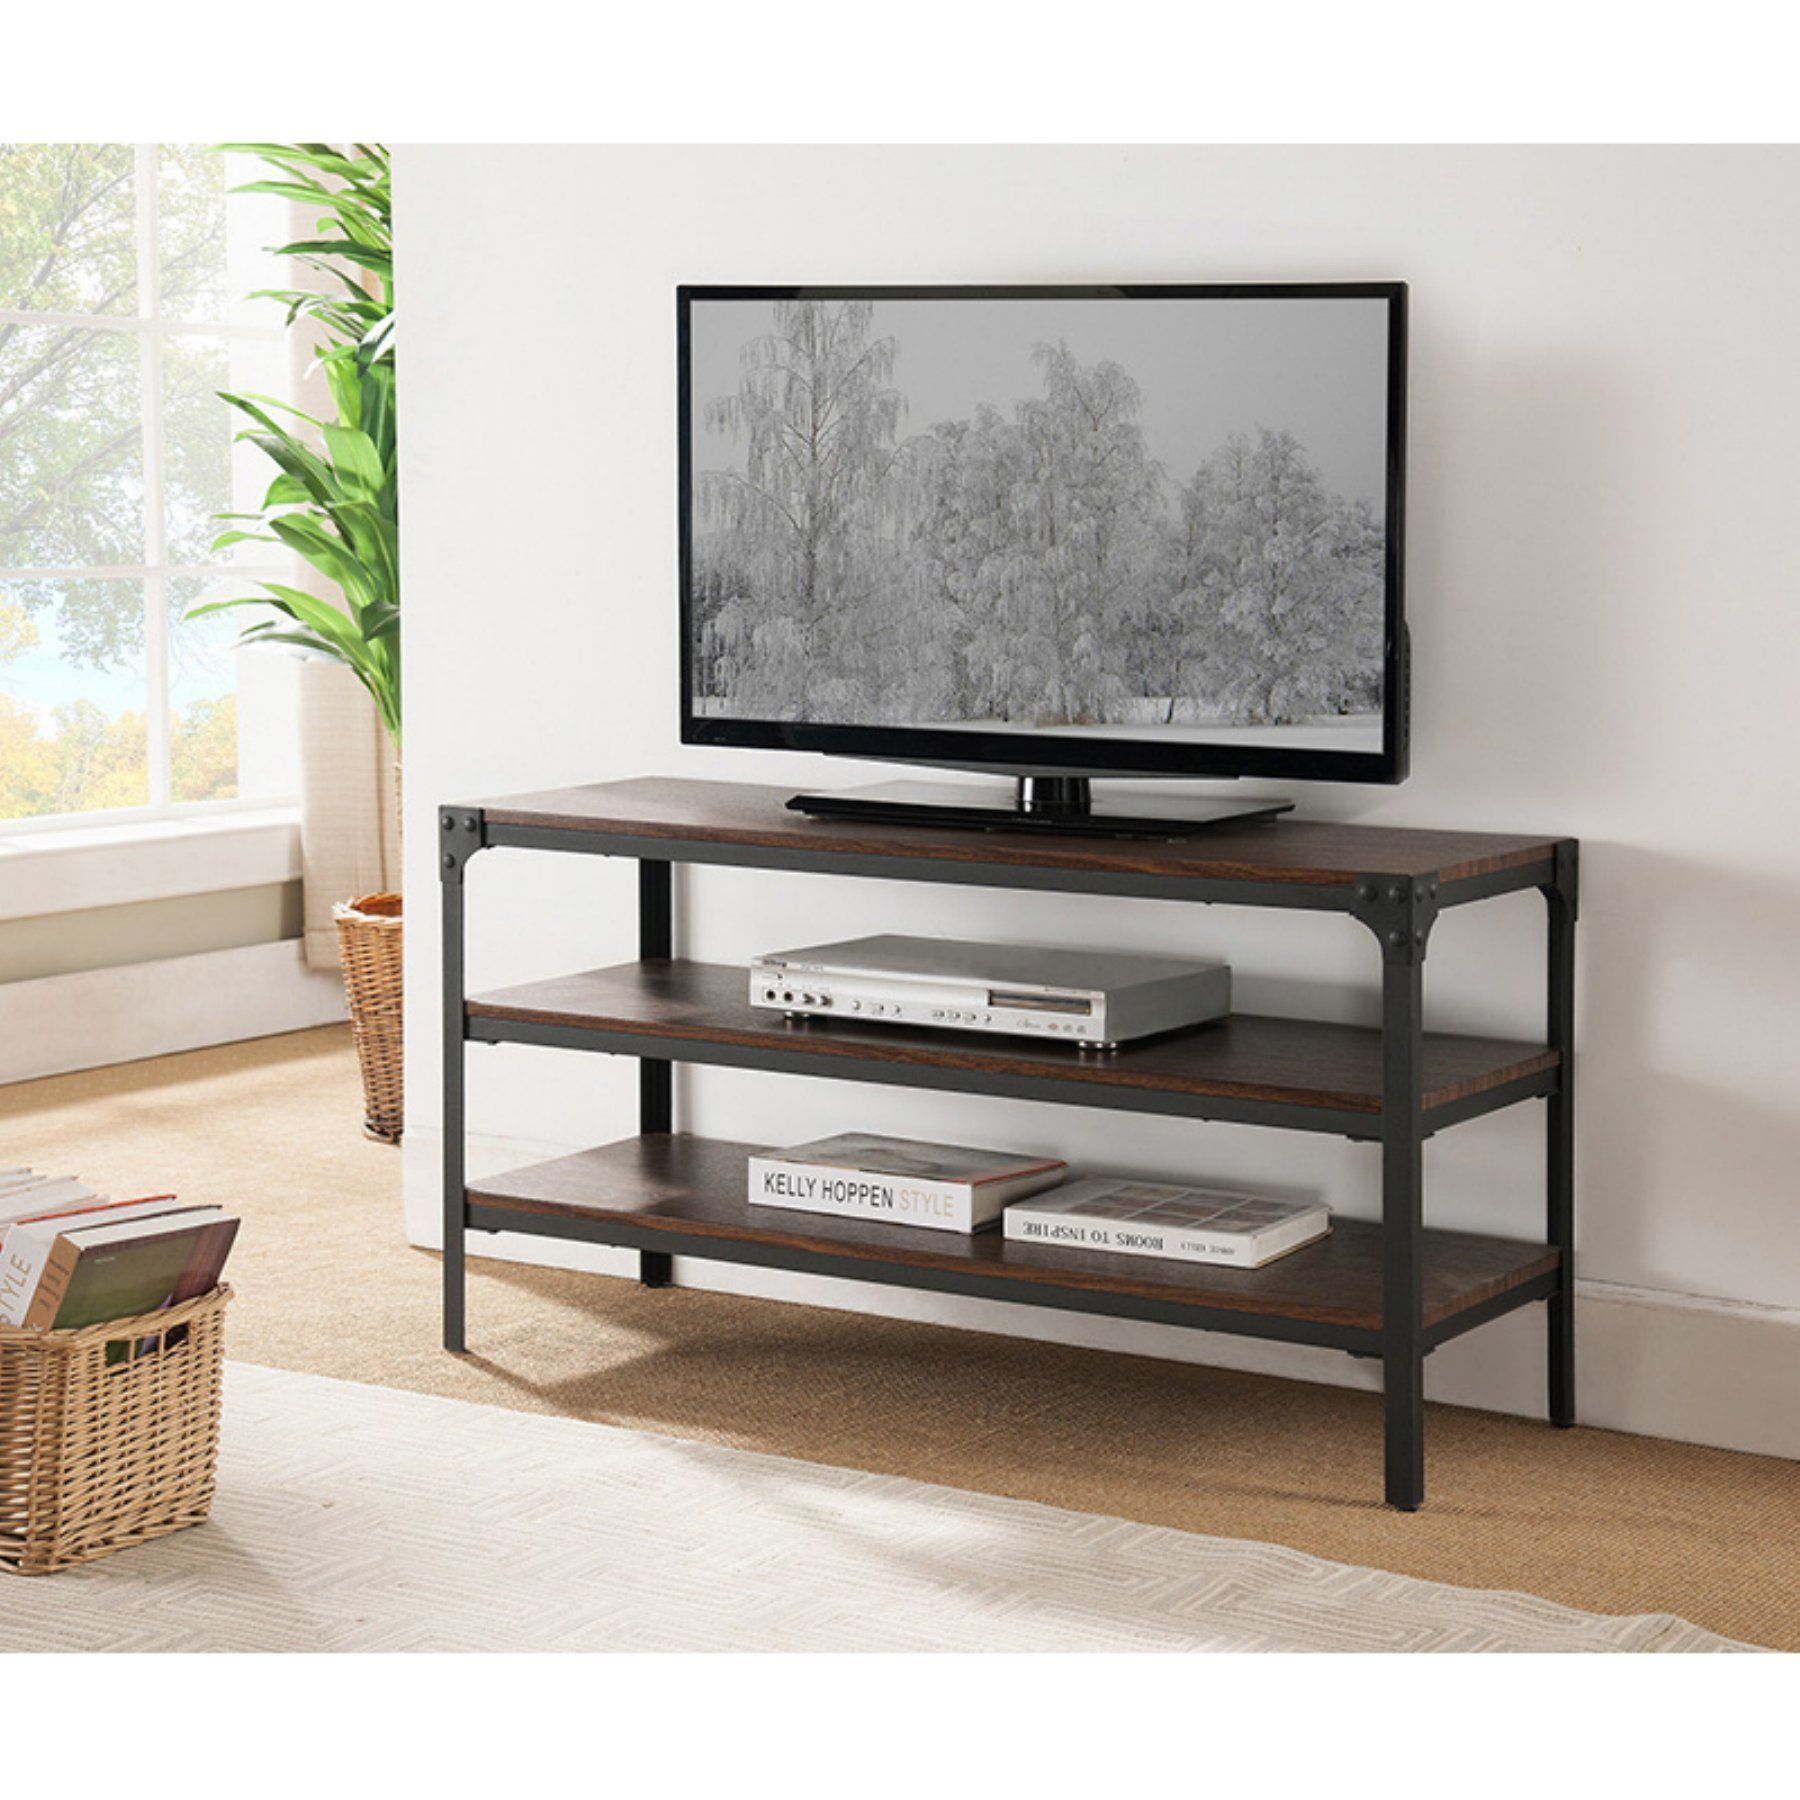 K&B Furniture 46 in Metal and Walnut 2 Shelf TV Stand E012